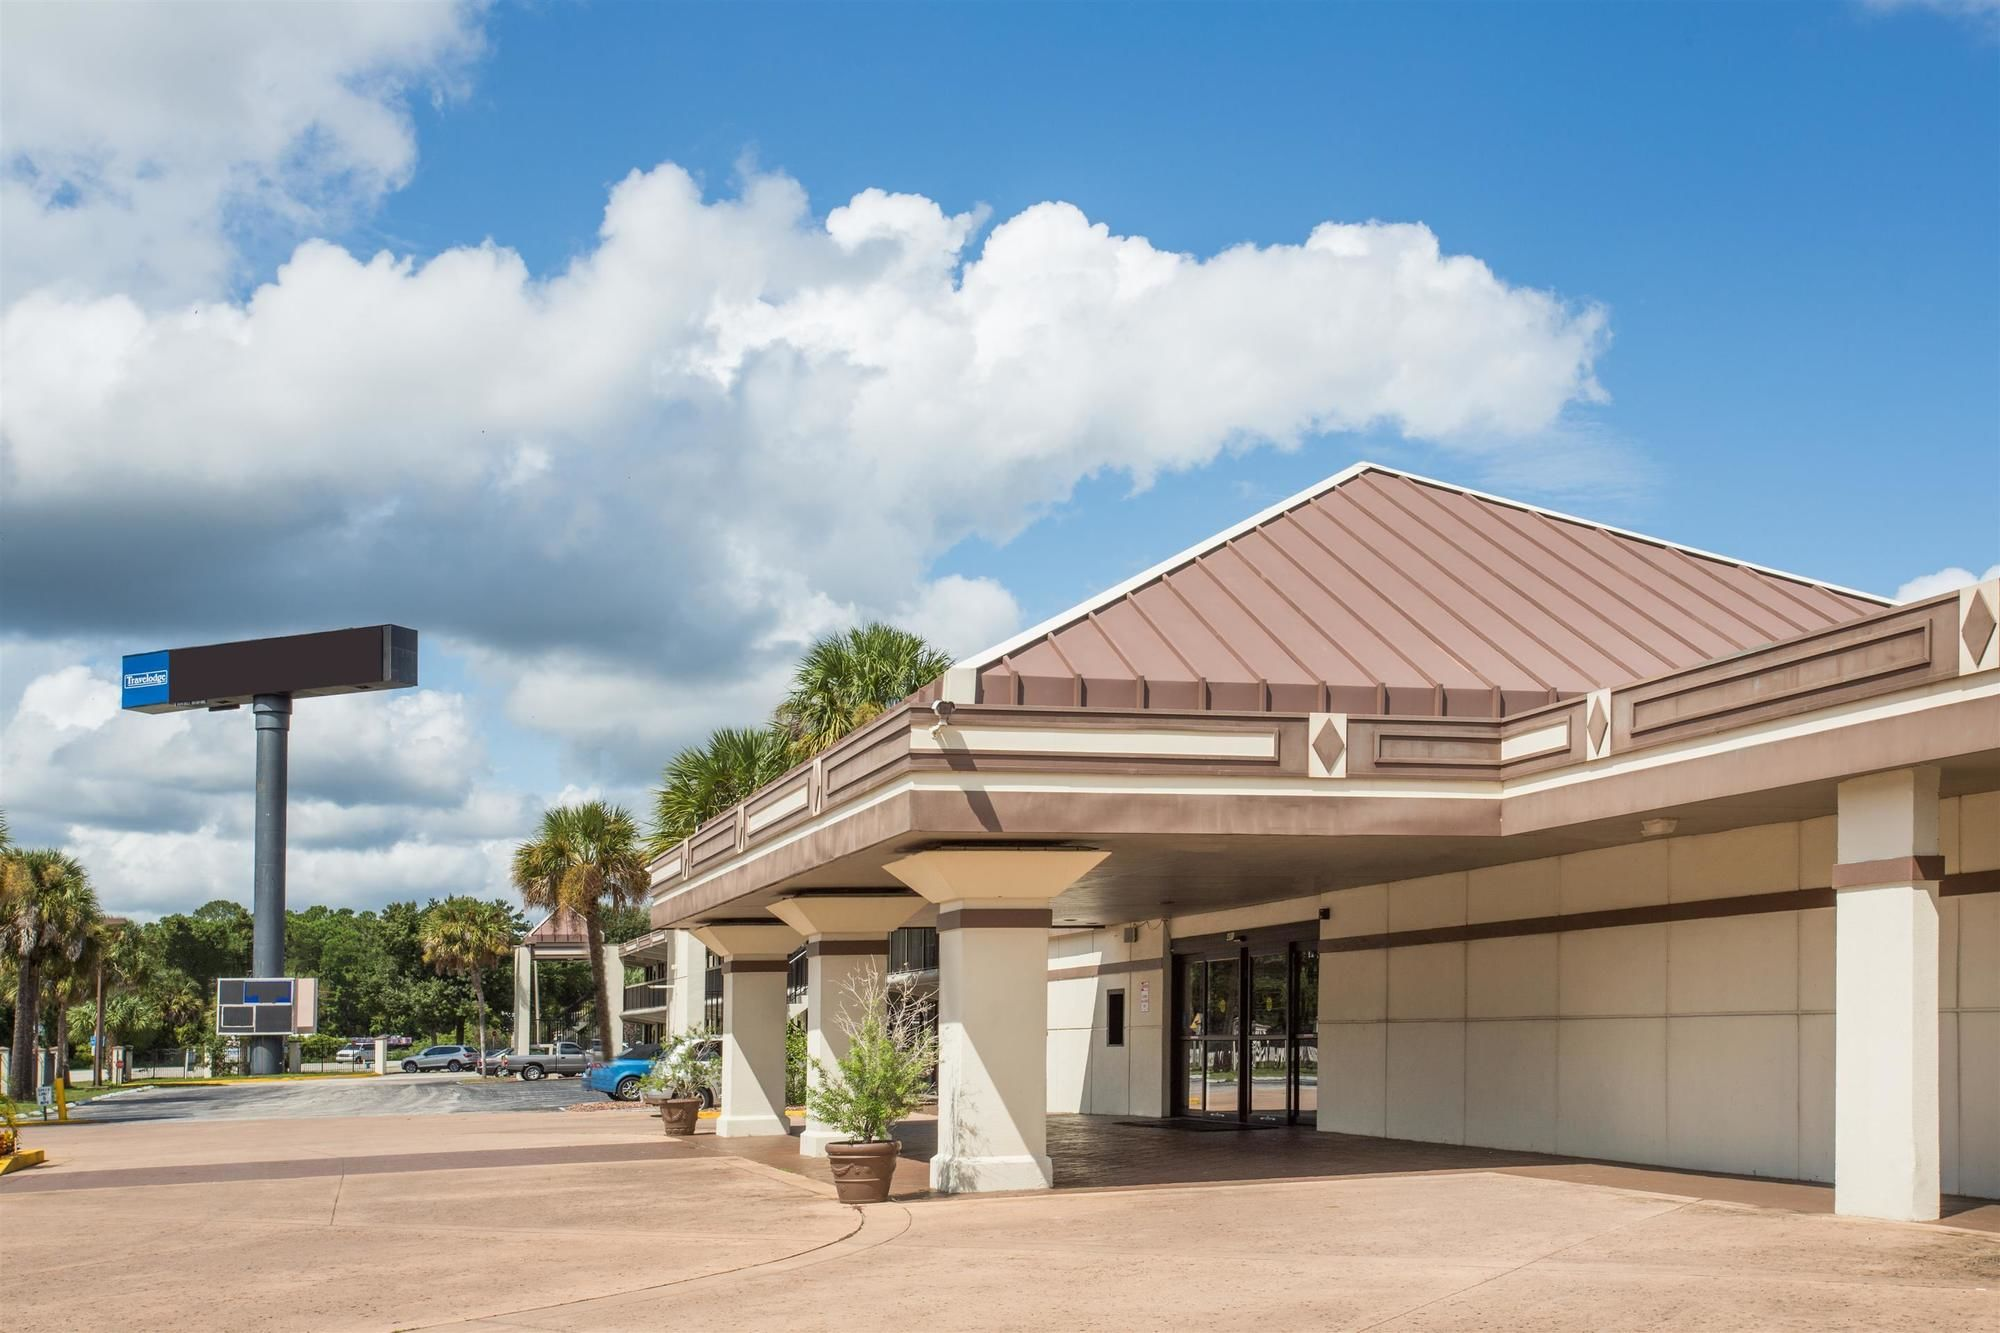 Travelodge Deltona